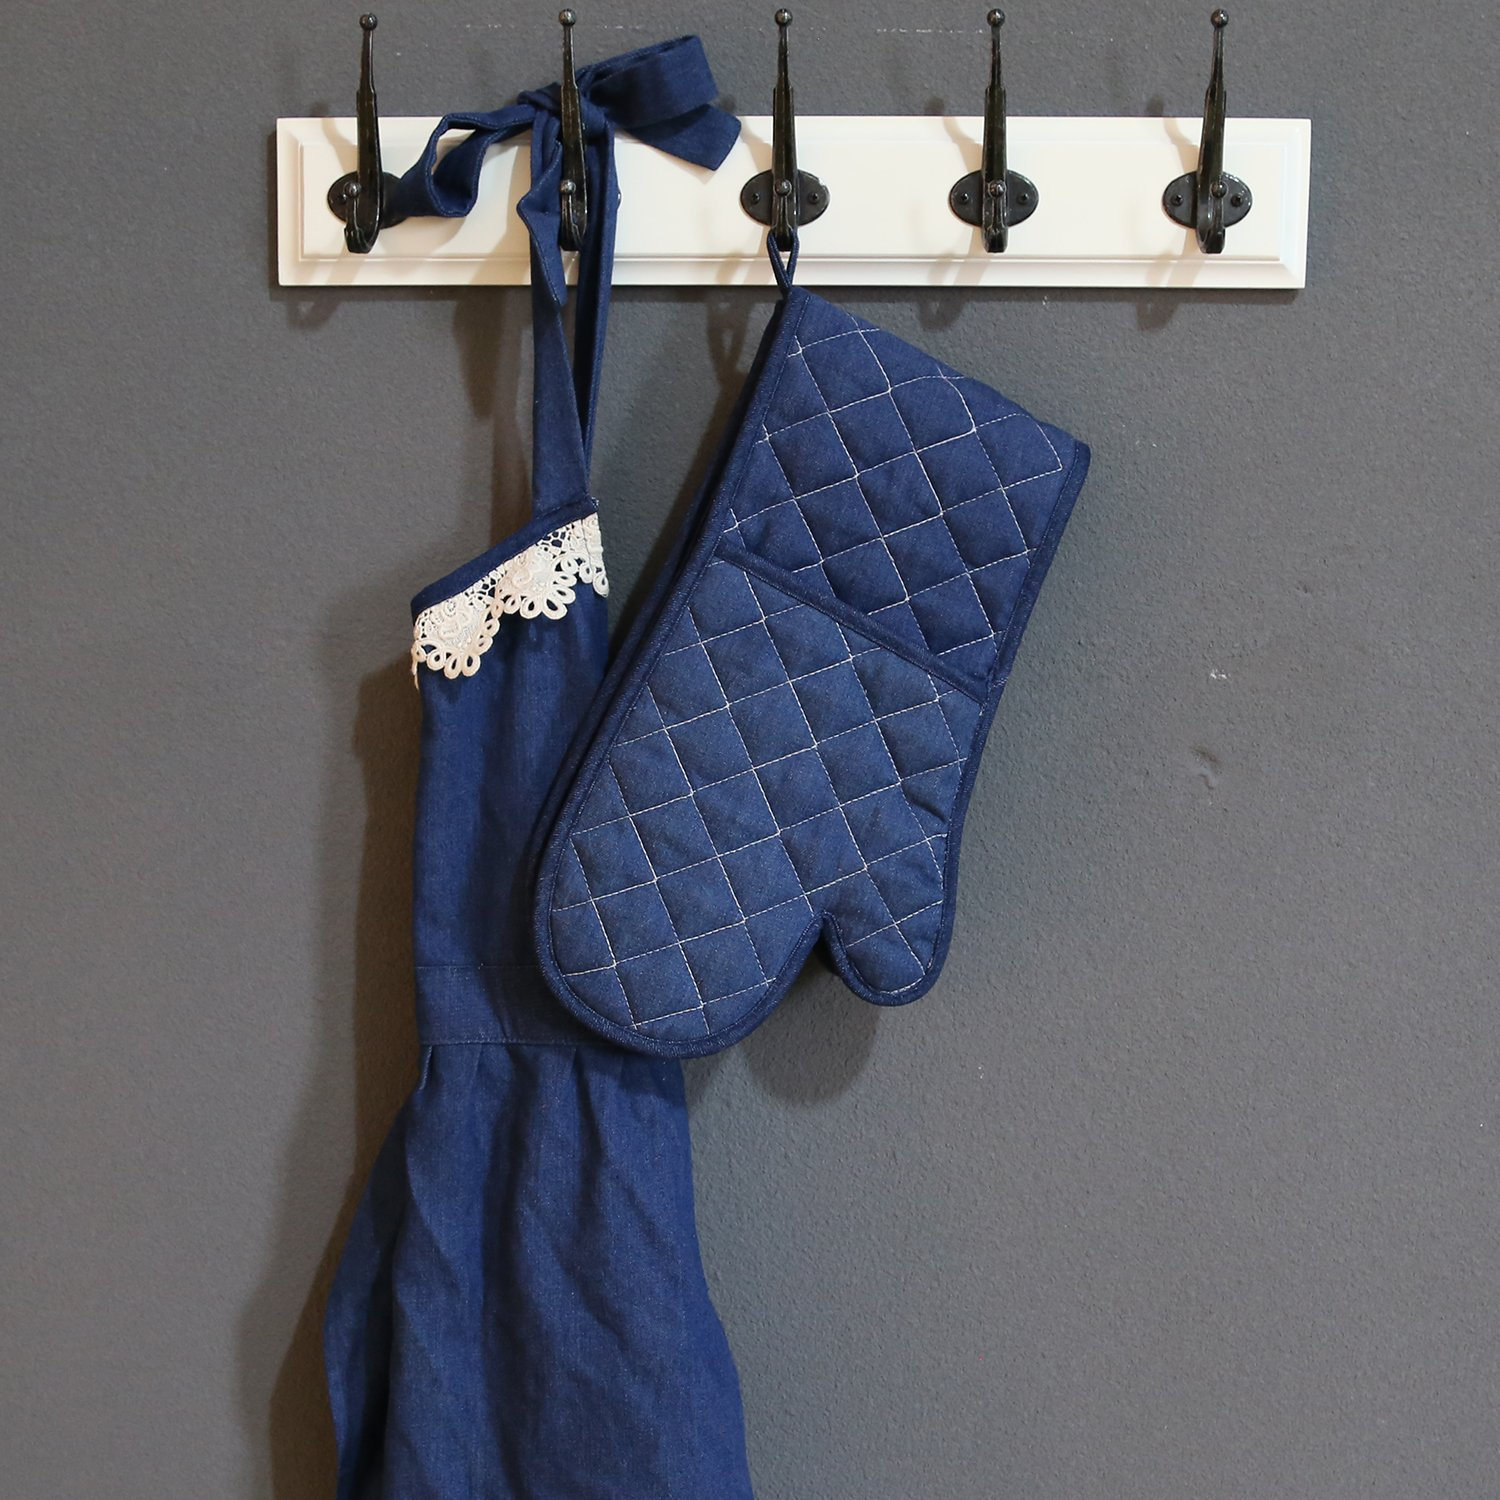 Solid Skyway Blue XinDaSheng Arts CO NEOVIVA Quilted Retro Denim Jeans Place Mat for Dining with Pocket HangZhou LTD.